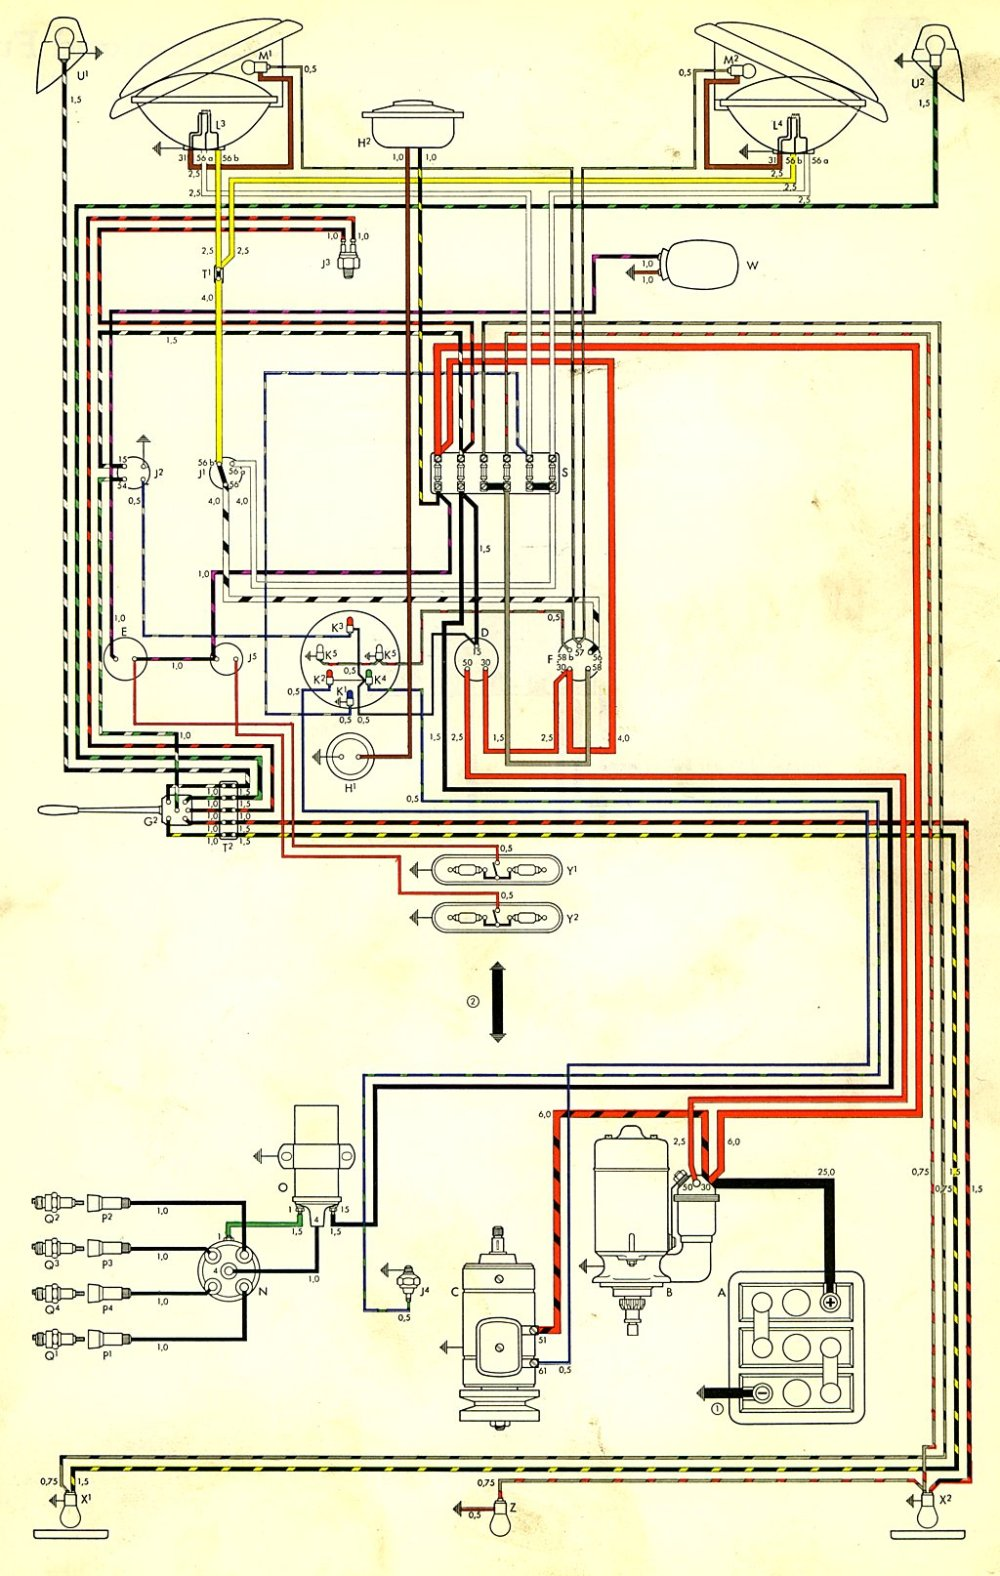 medium resolution of thesamba com type 2 wiring diagrams 73 vw bug wiring diagram 2003 vw wiring diagram